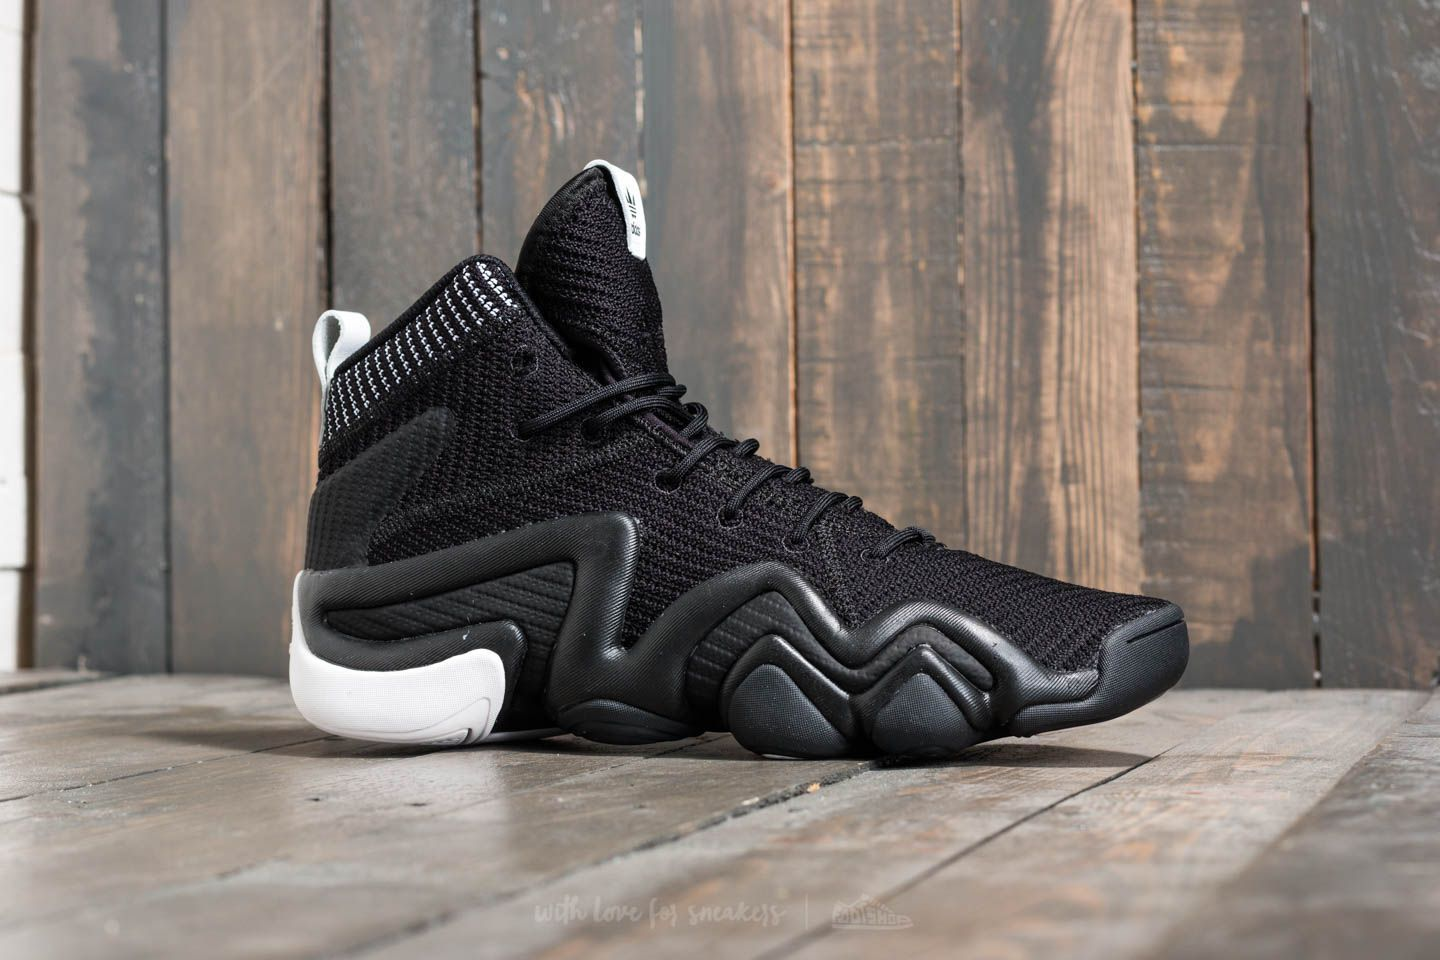 hot sale online 8a617 cbbfe adidas Crazy 8 ADV Primeknit Core Black Core Black FTW White at a great